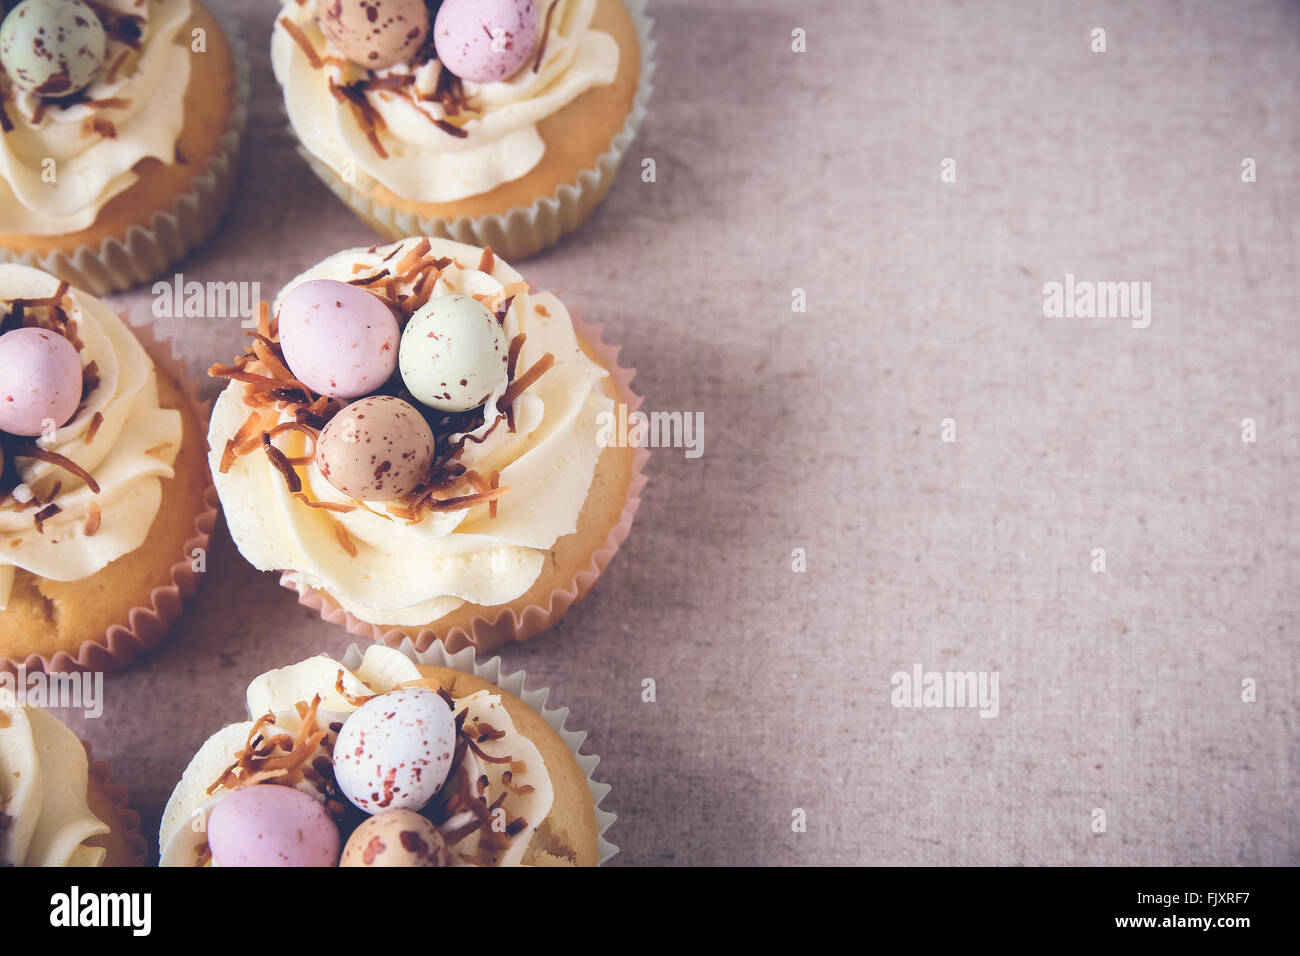 Homemade Easter eggs cupcakes, copy space background,toning - Stock Image